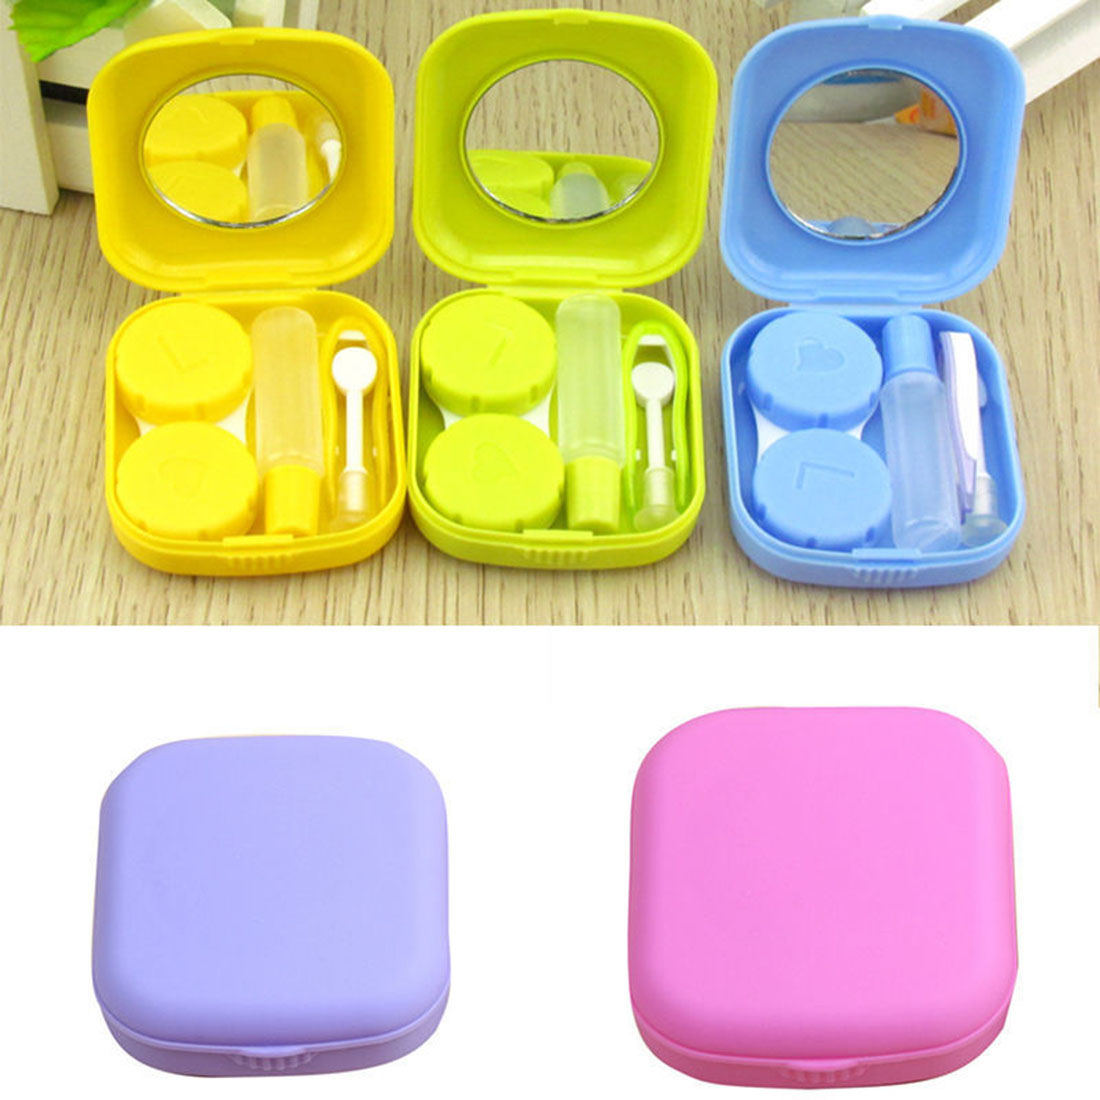 Easy Carry 1pc Travel Glasses Contact Lenses Box Contact Lens Case For Eyes Care Kit Holder Container Gift Fashoin New Back To Search Resultsapparel Accessories